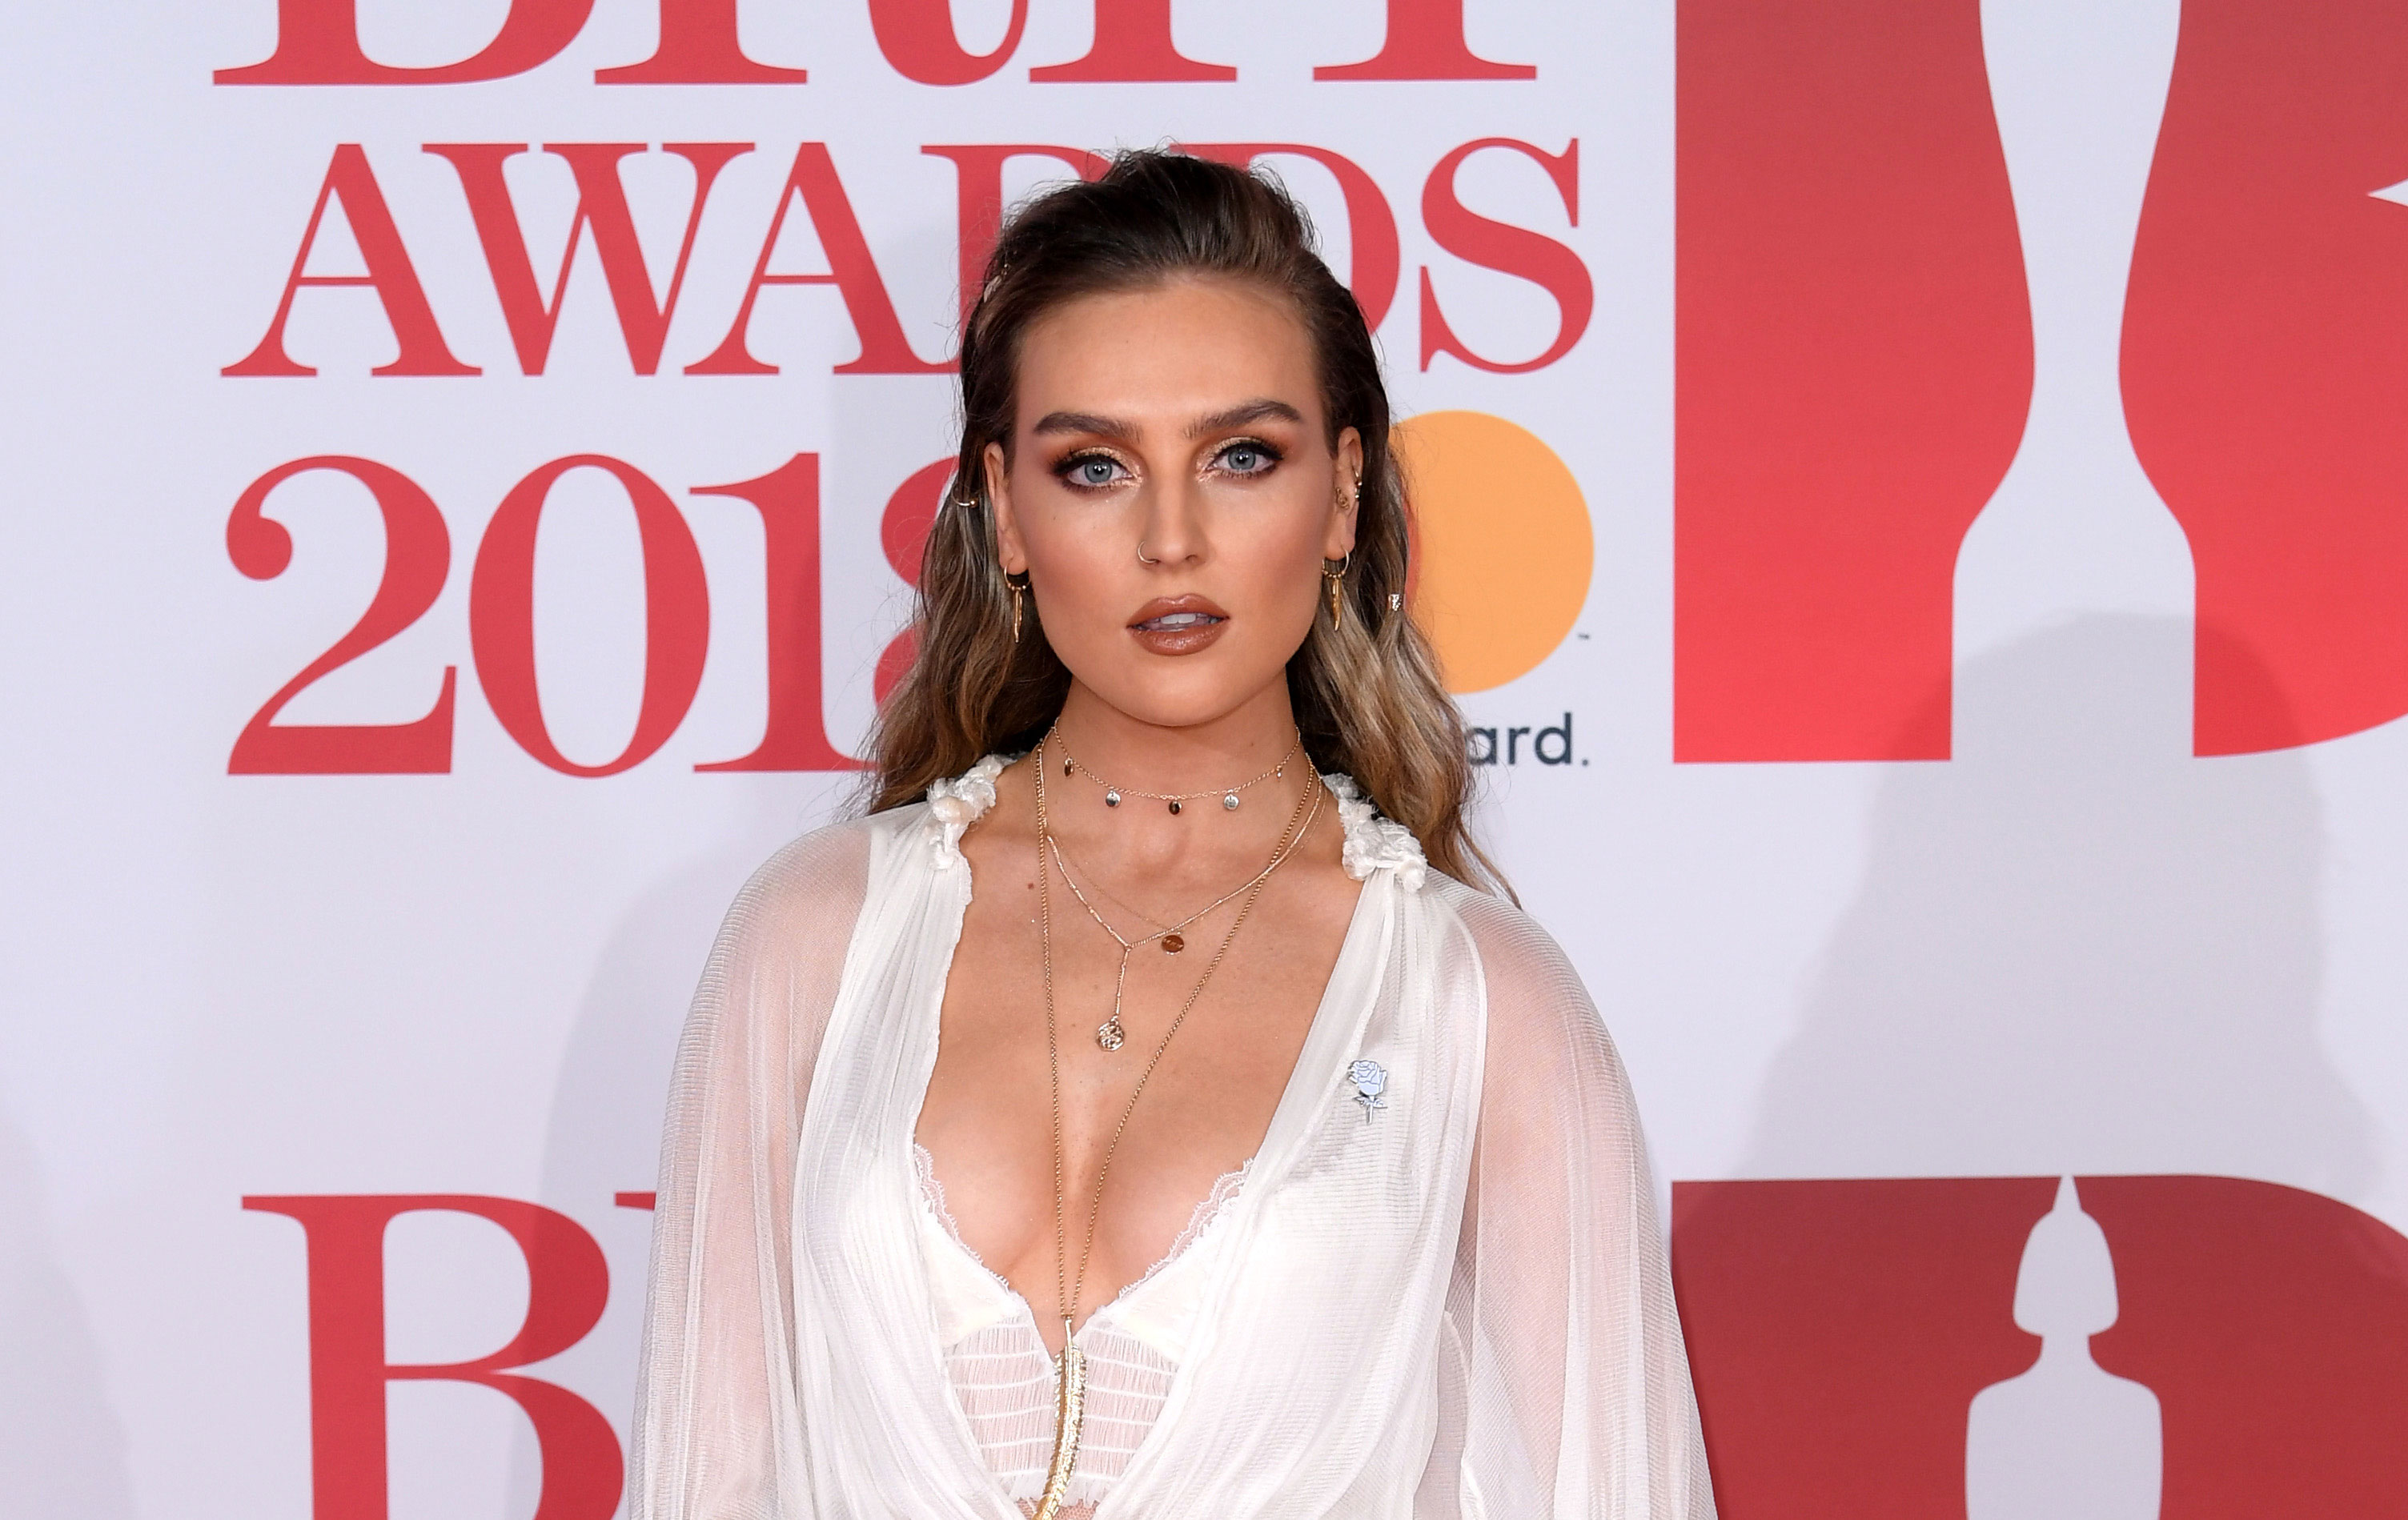 Little Mix Singer Perrie Edwards Shows Off Amazing